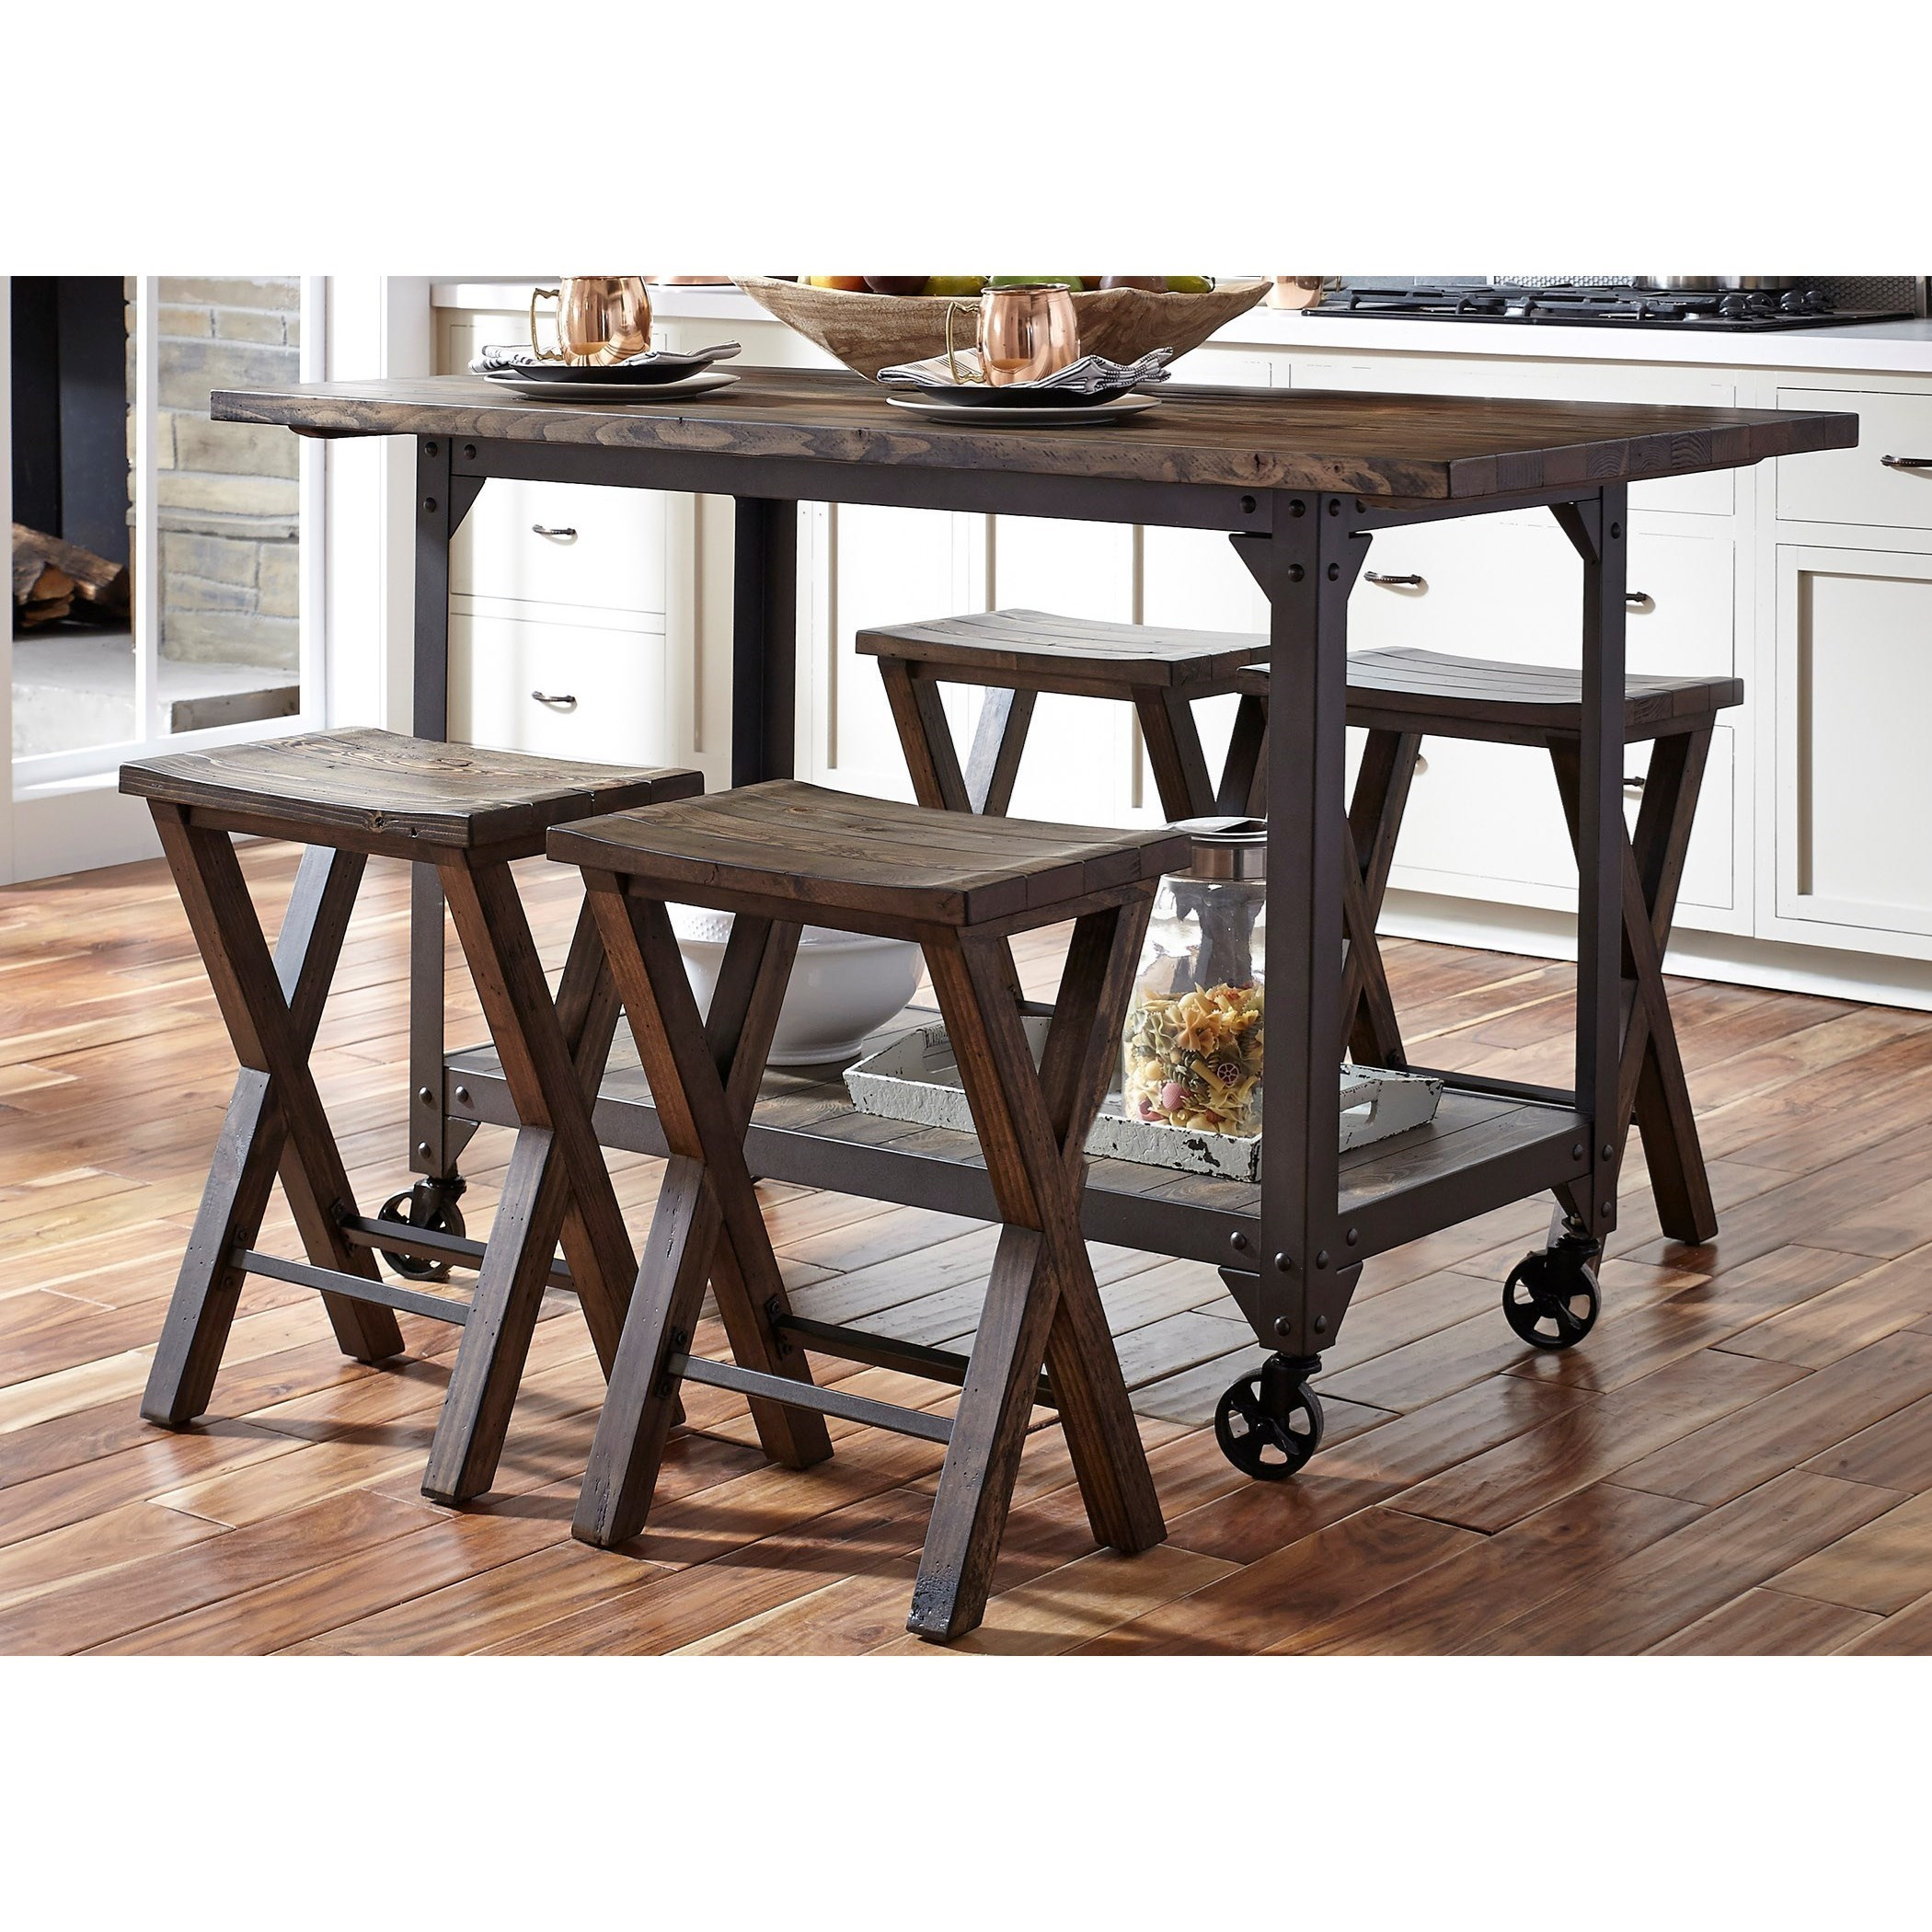 kitchen island stool wall decor ideas caldwell industrial and counter height set